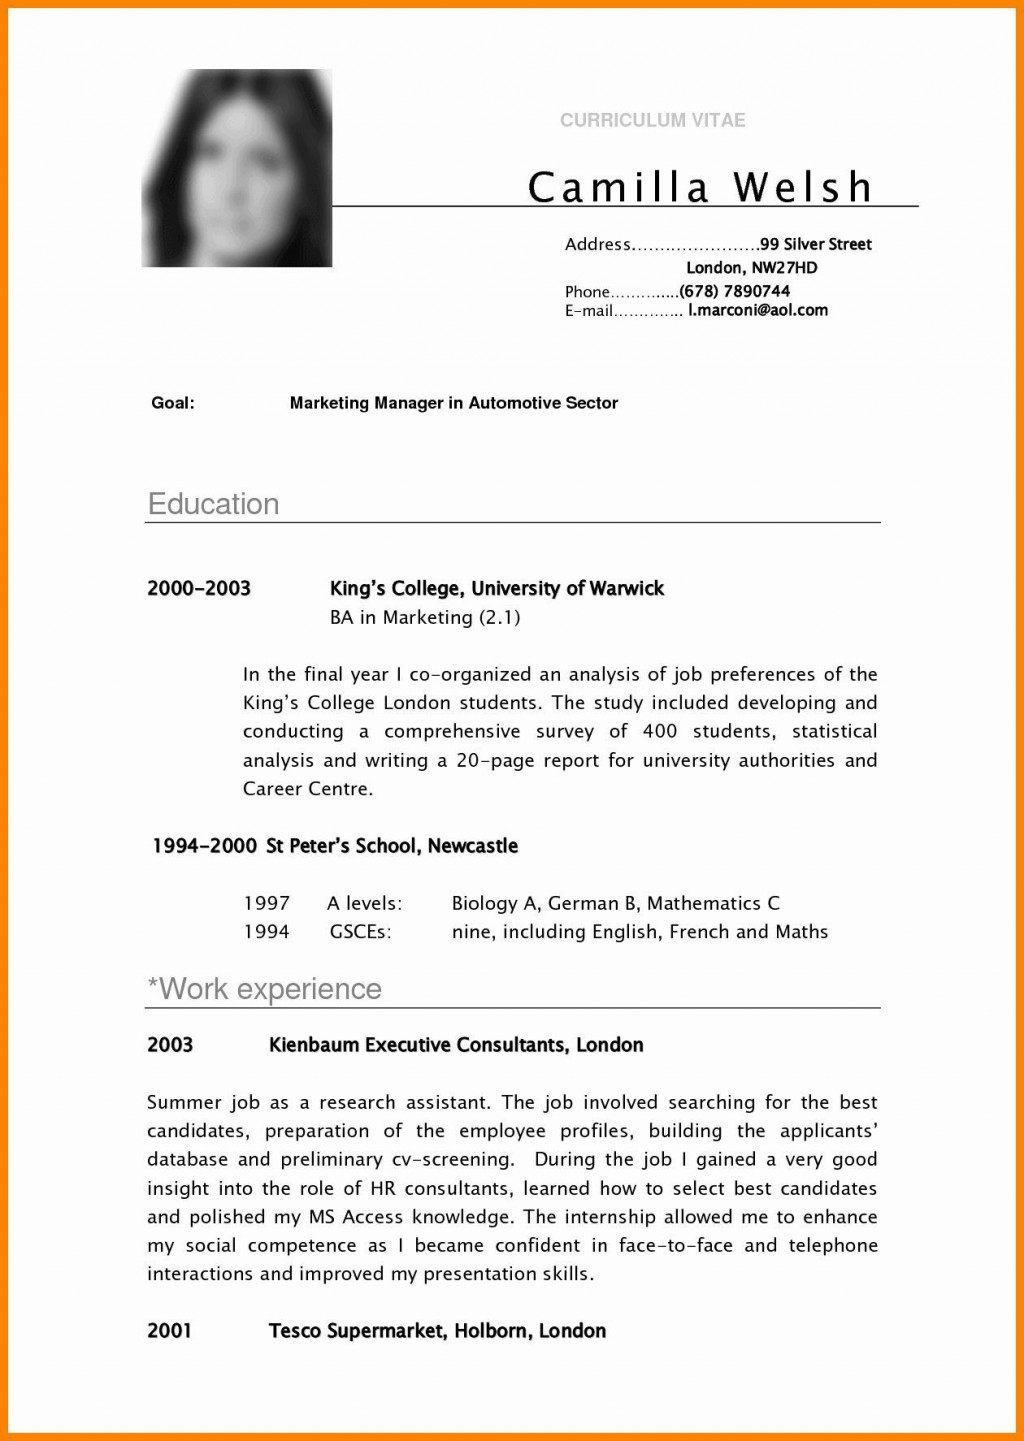 002 Shocking Resume Template For College Student Idea  Students Free Download Example With Little Work ExperienceLarge